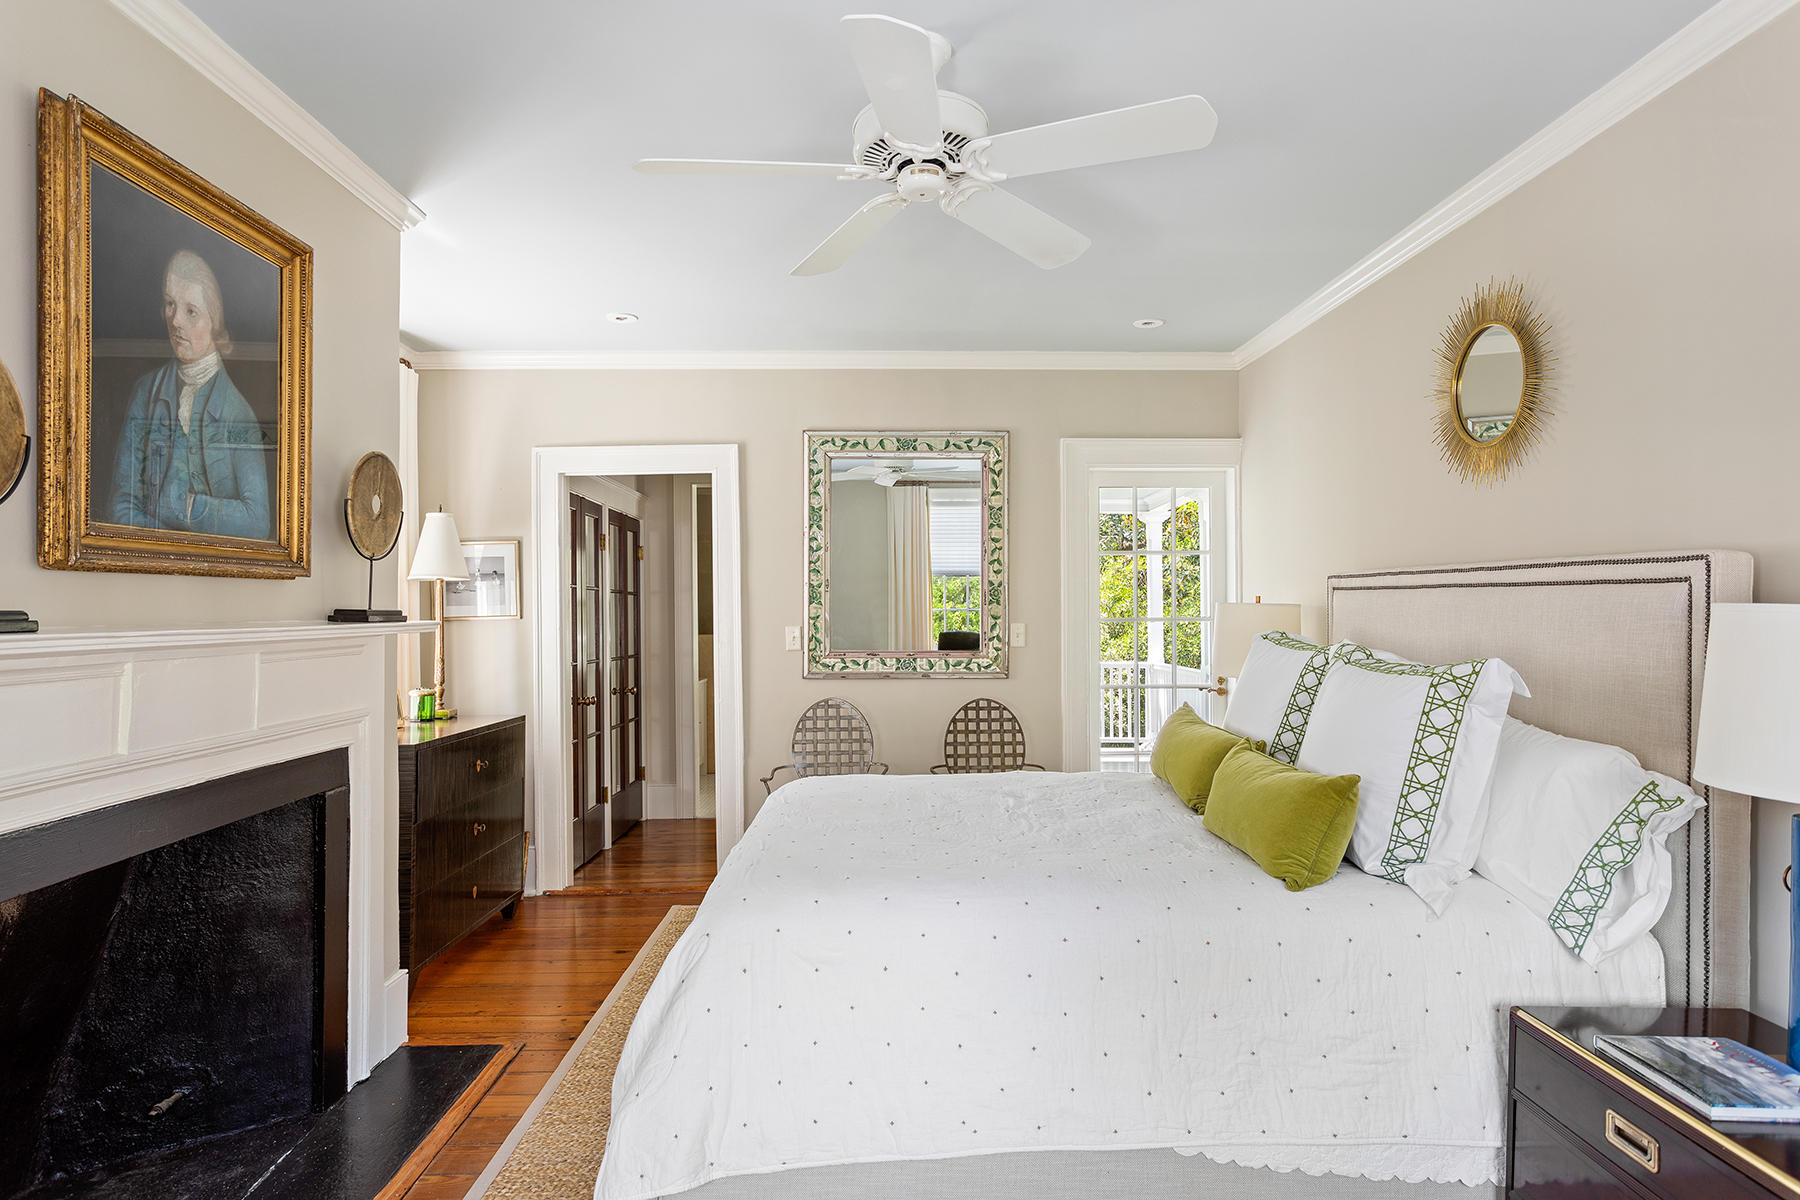 South of Broad Homes For Sale - 3 Atlantic, Charleston, SC - 6